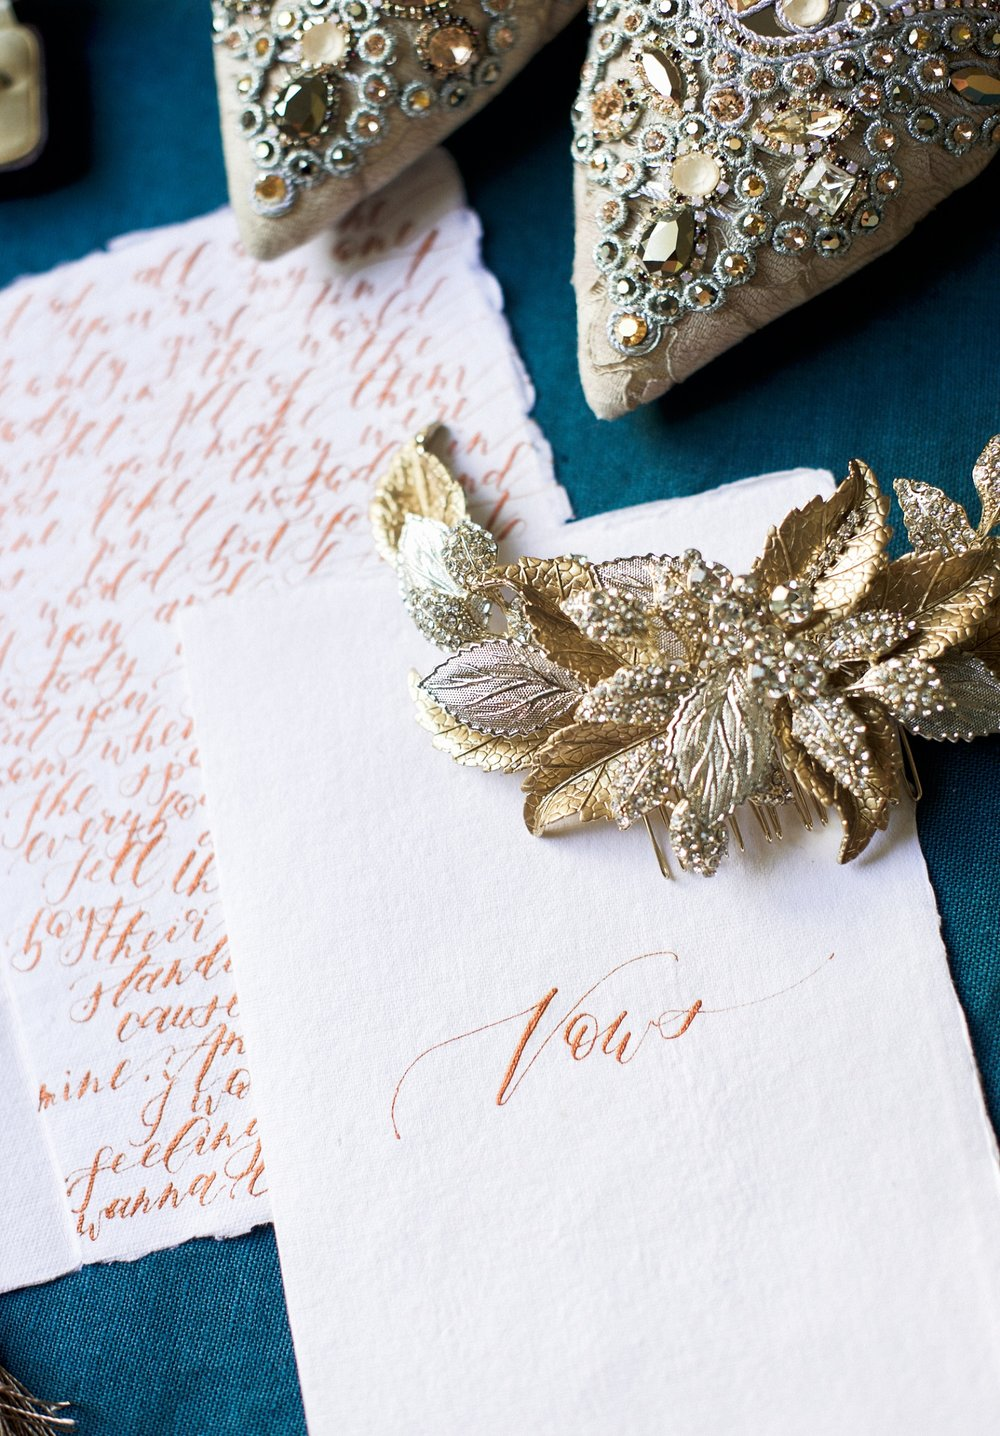 shannon-skloss-photography-dallas-weddings-fort-worth-weddings-grit-and-gold-event-co-pretty-post-calligraphy-race-and-religious-new-orleans-wedding.jpg